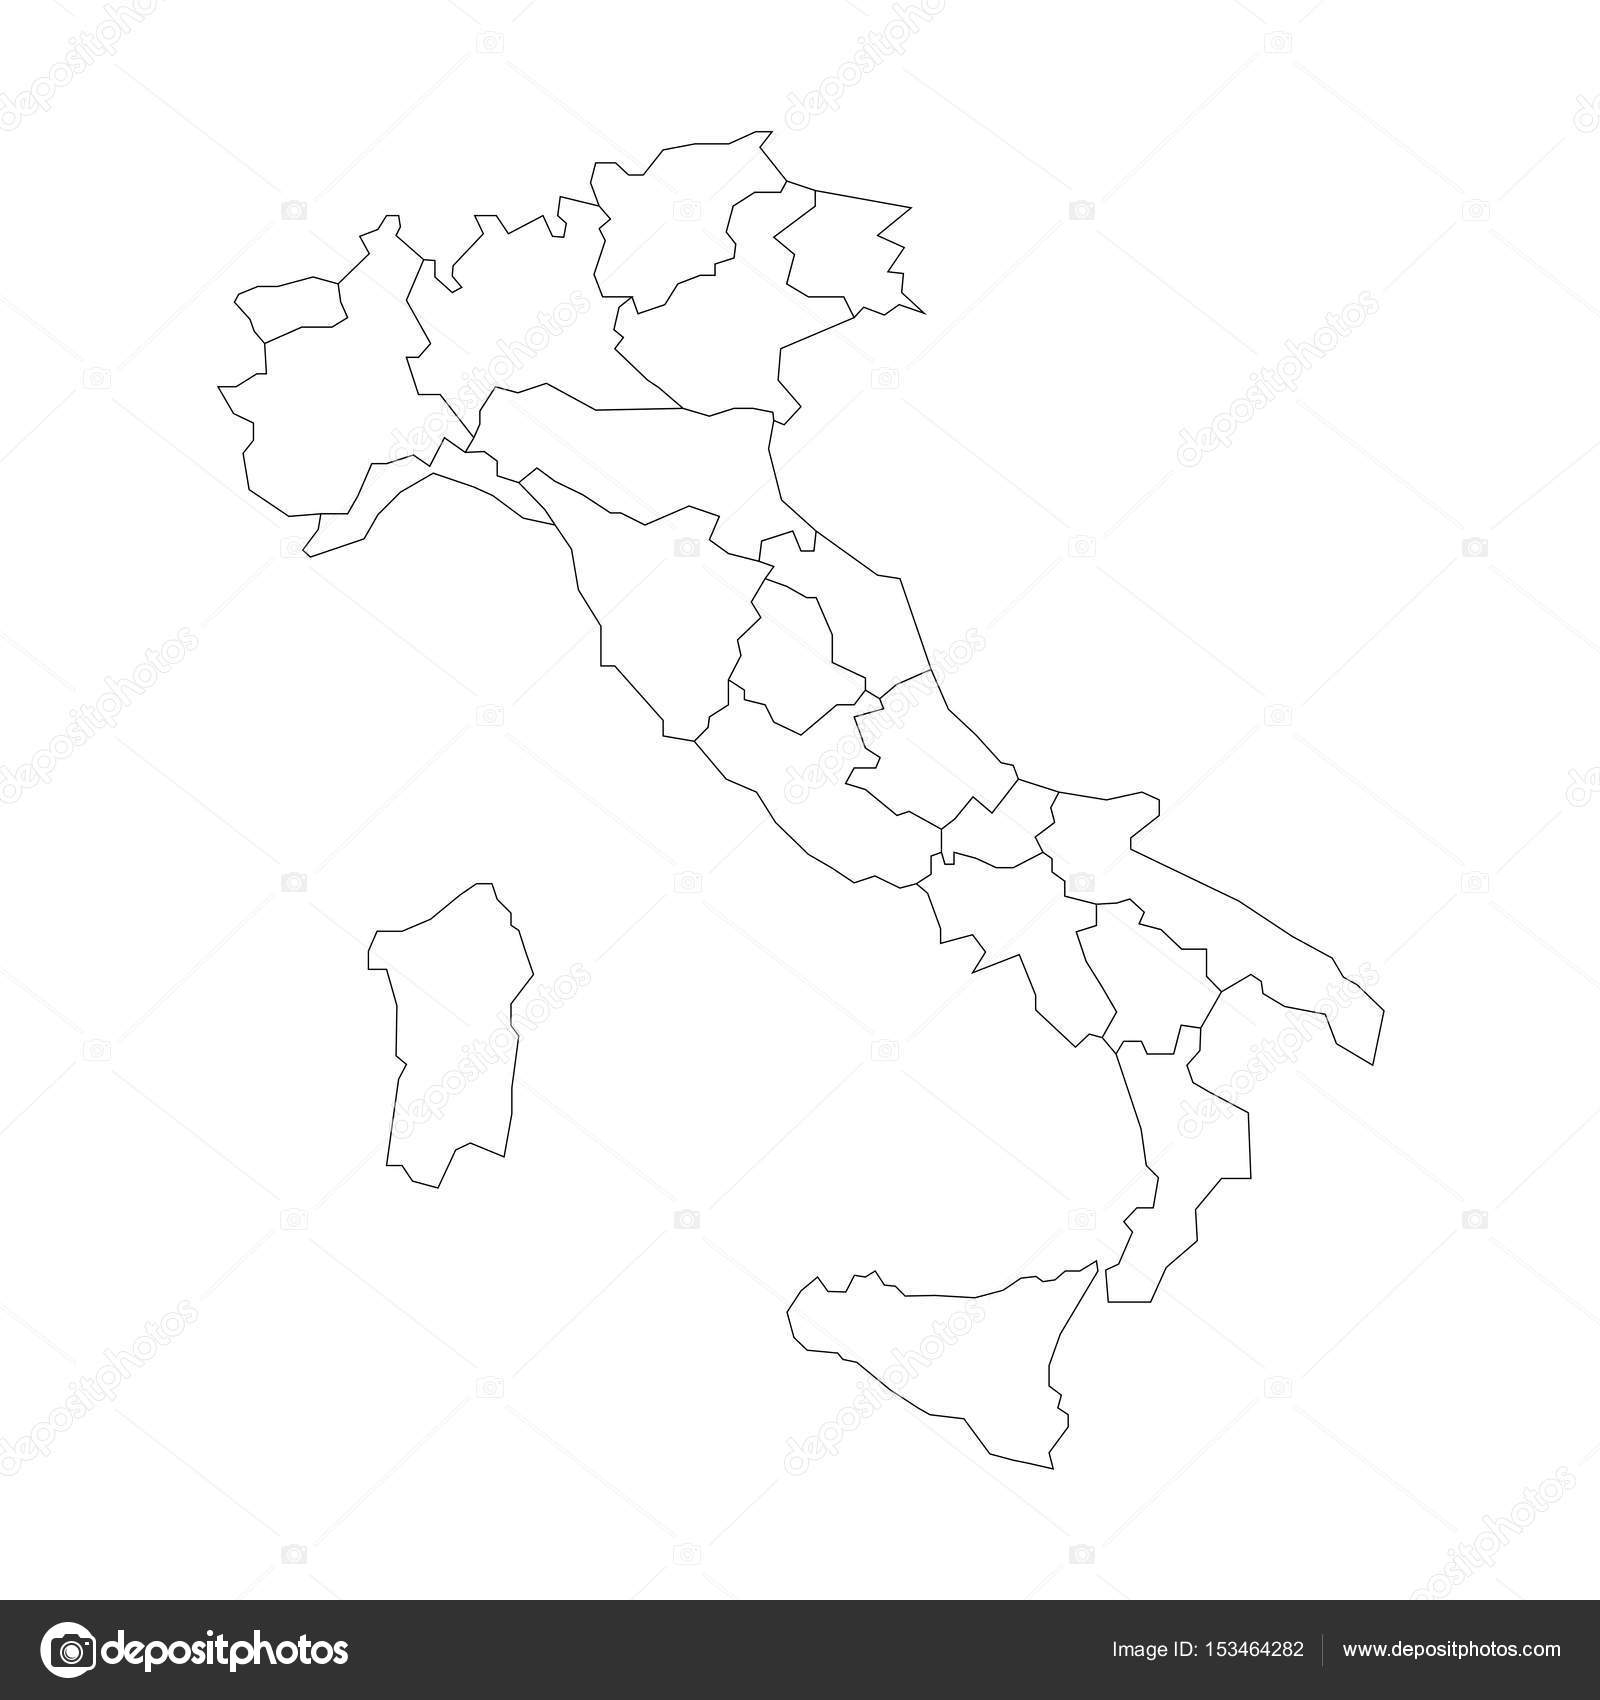 Black And White Map Of Italy.Map Of Italy Divided Into 20 Administrative Regions White Land And